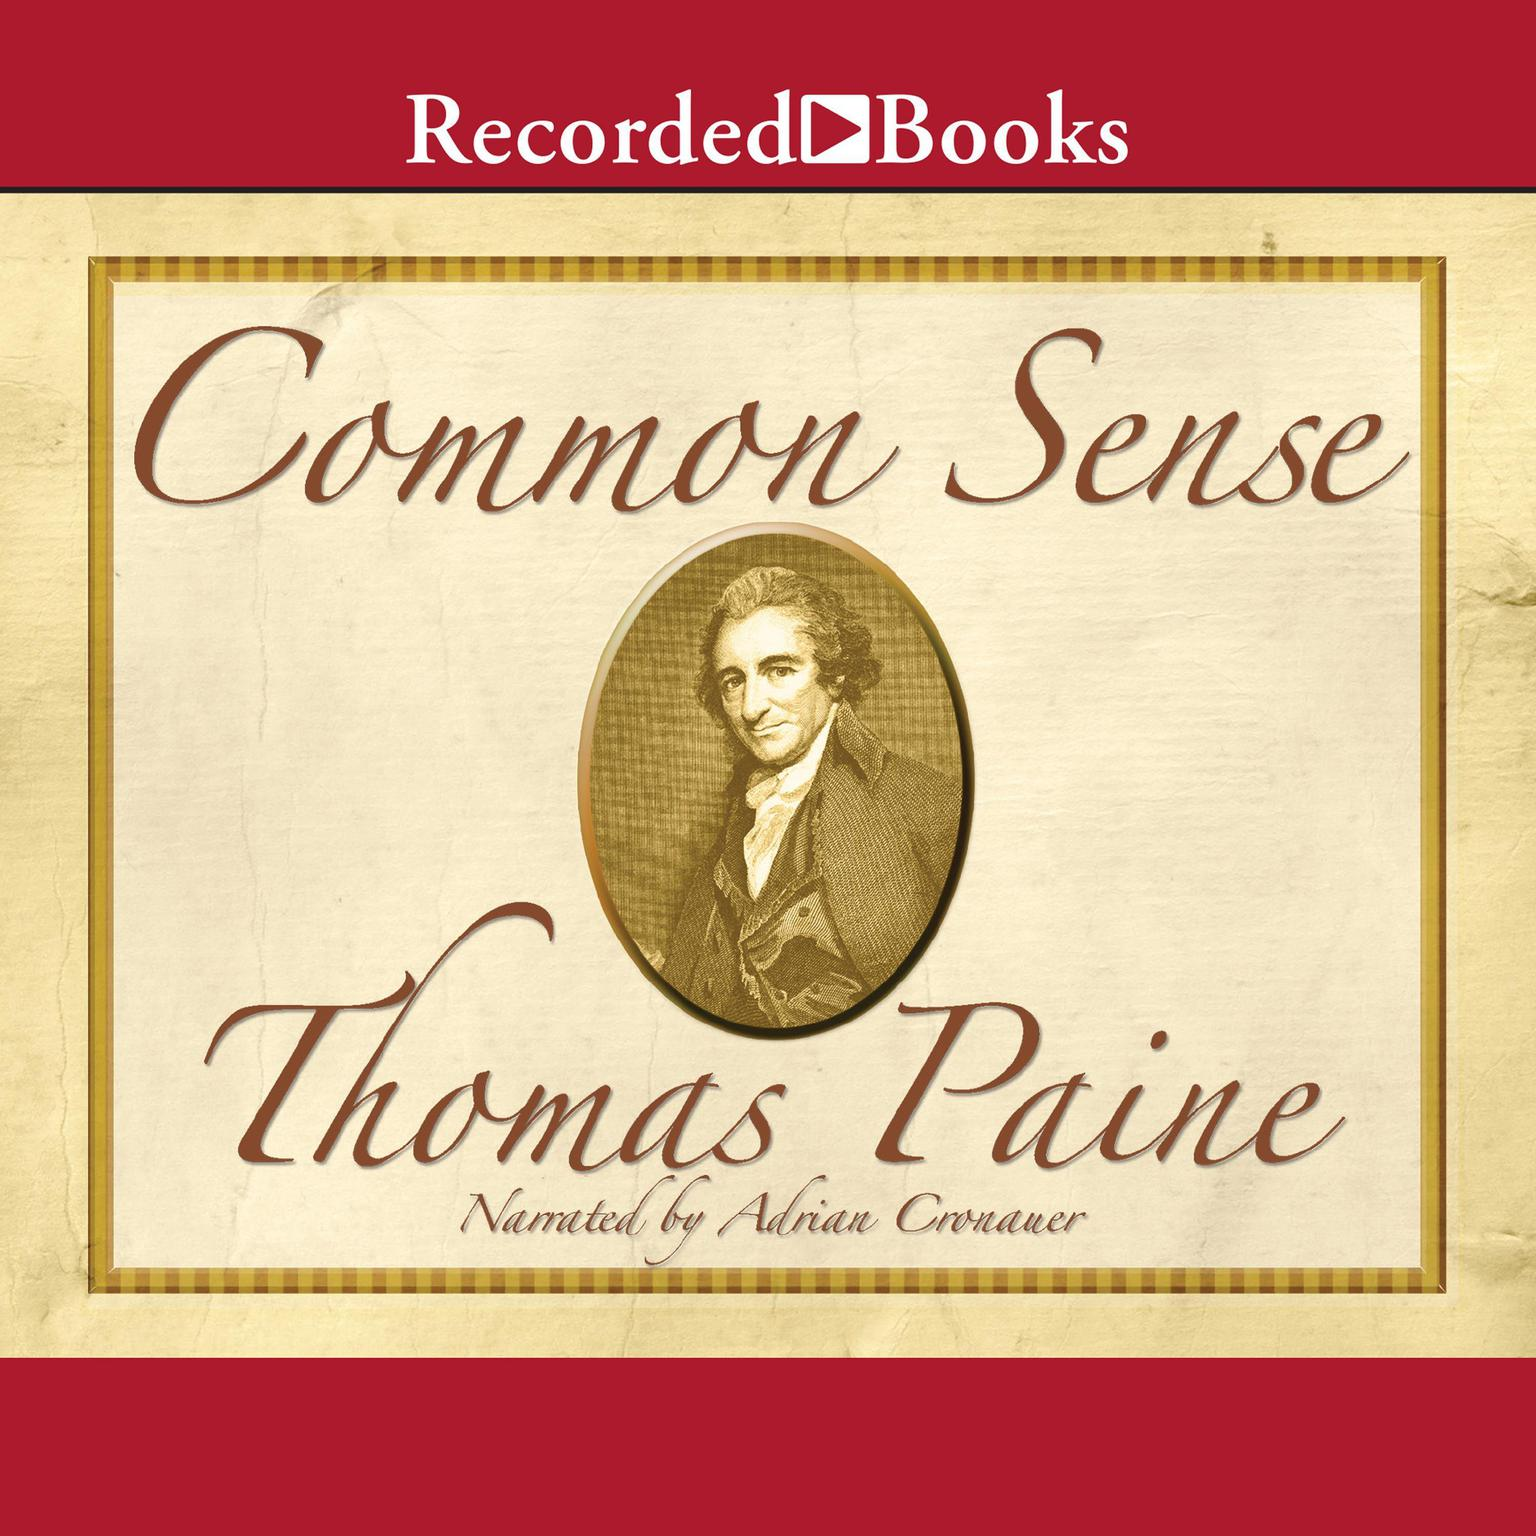 Thomas Paine Printable Worksheet